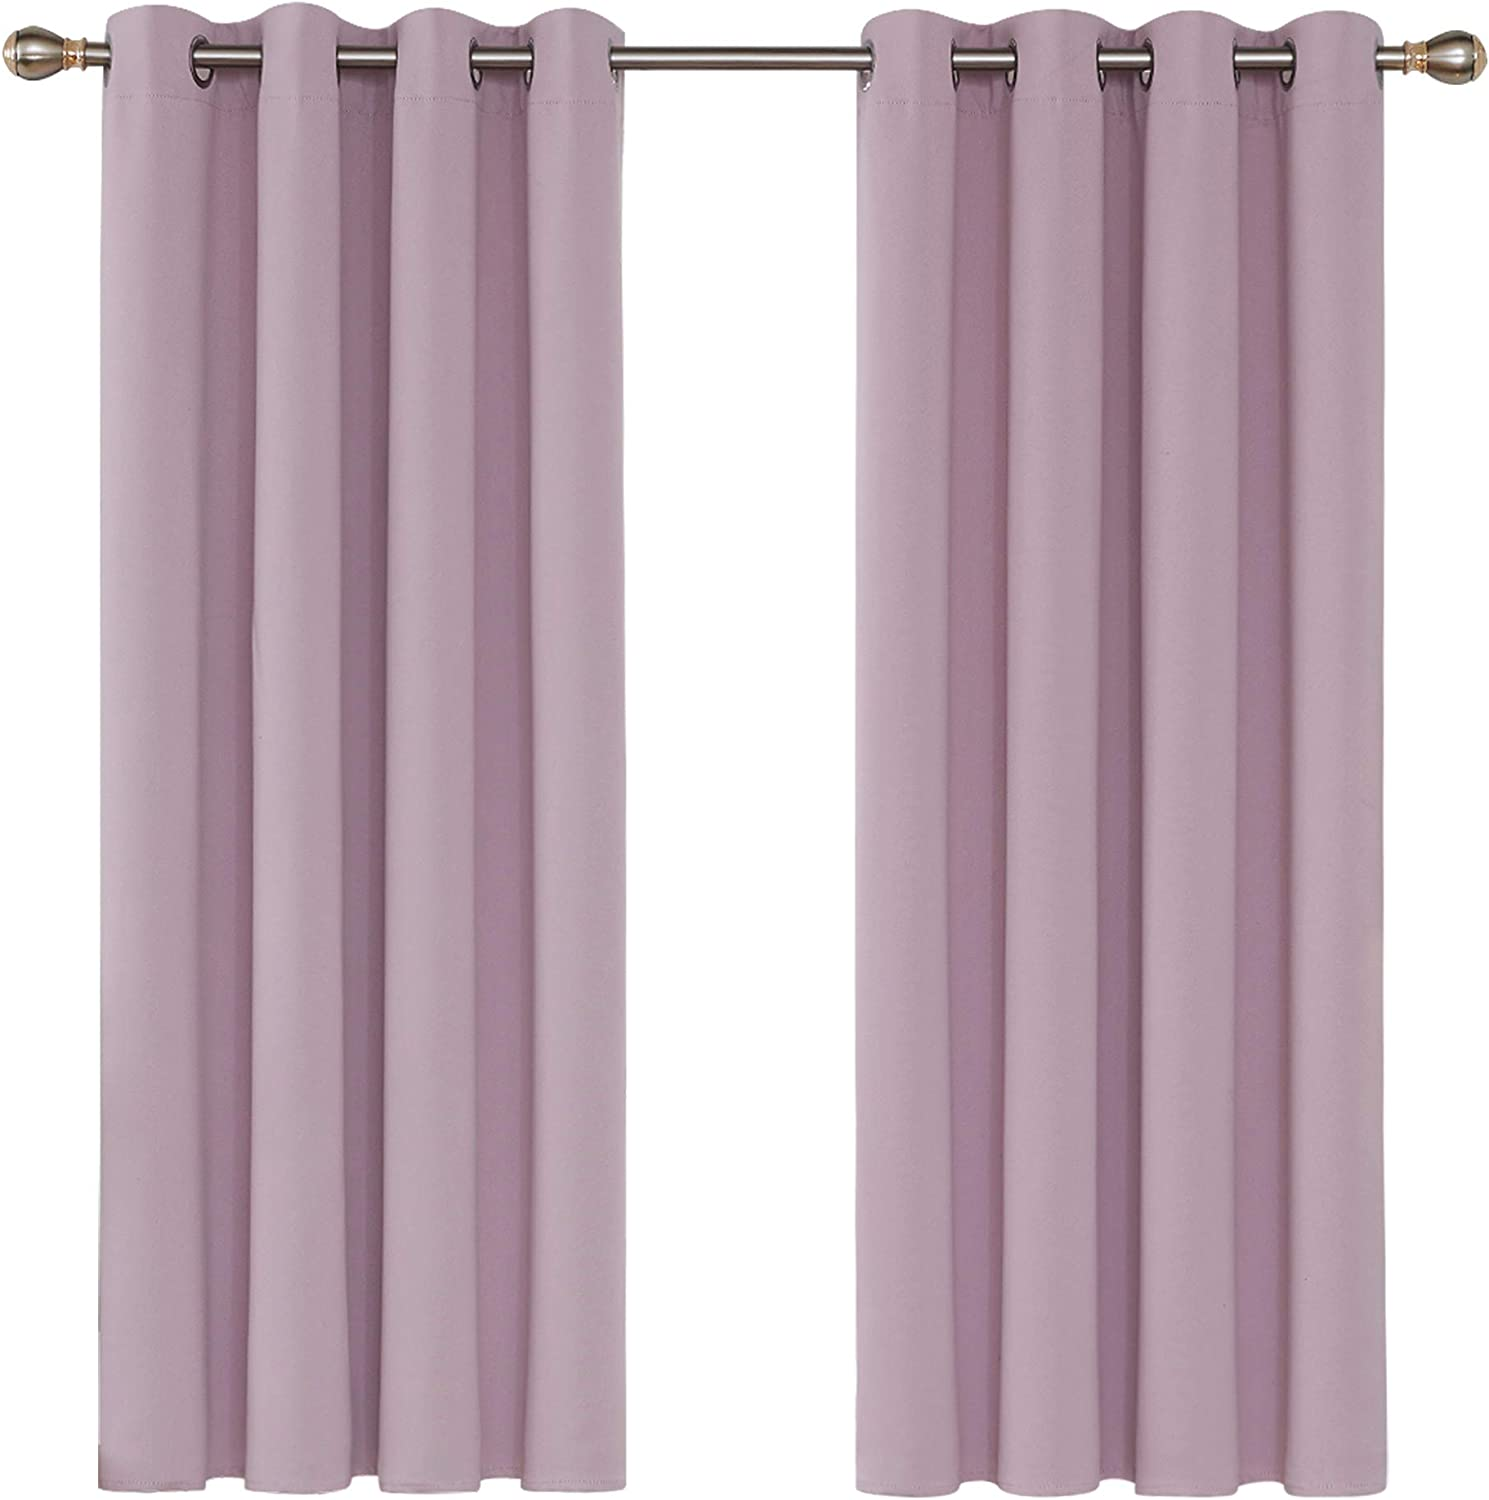 Deconovo Nursery Blackout Curtains for Bedroom Girls Eyelet Thermal Insulated Blackout Curtains 46 x 54 Inch Pink Lavender 2 Panels W46 x L54 Pink Lavender